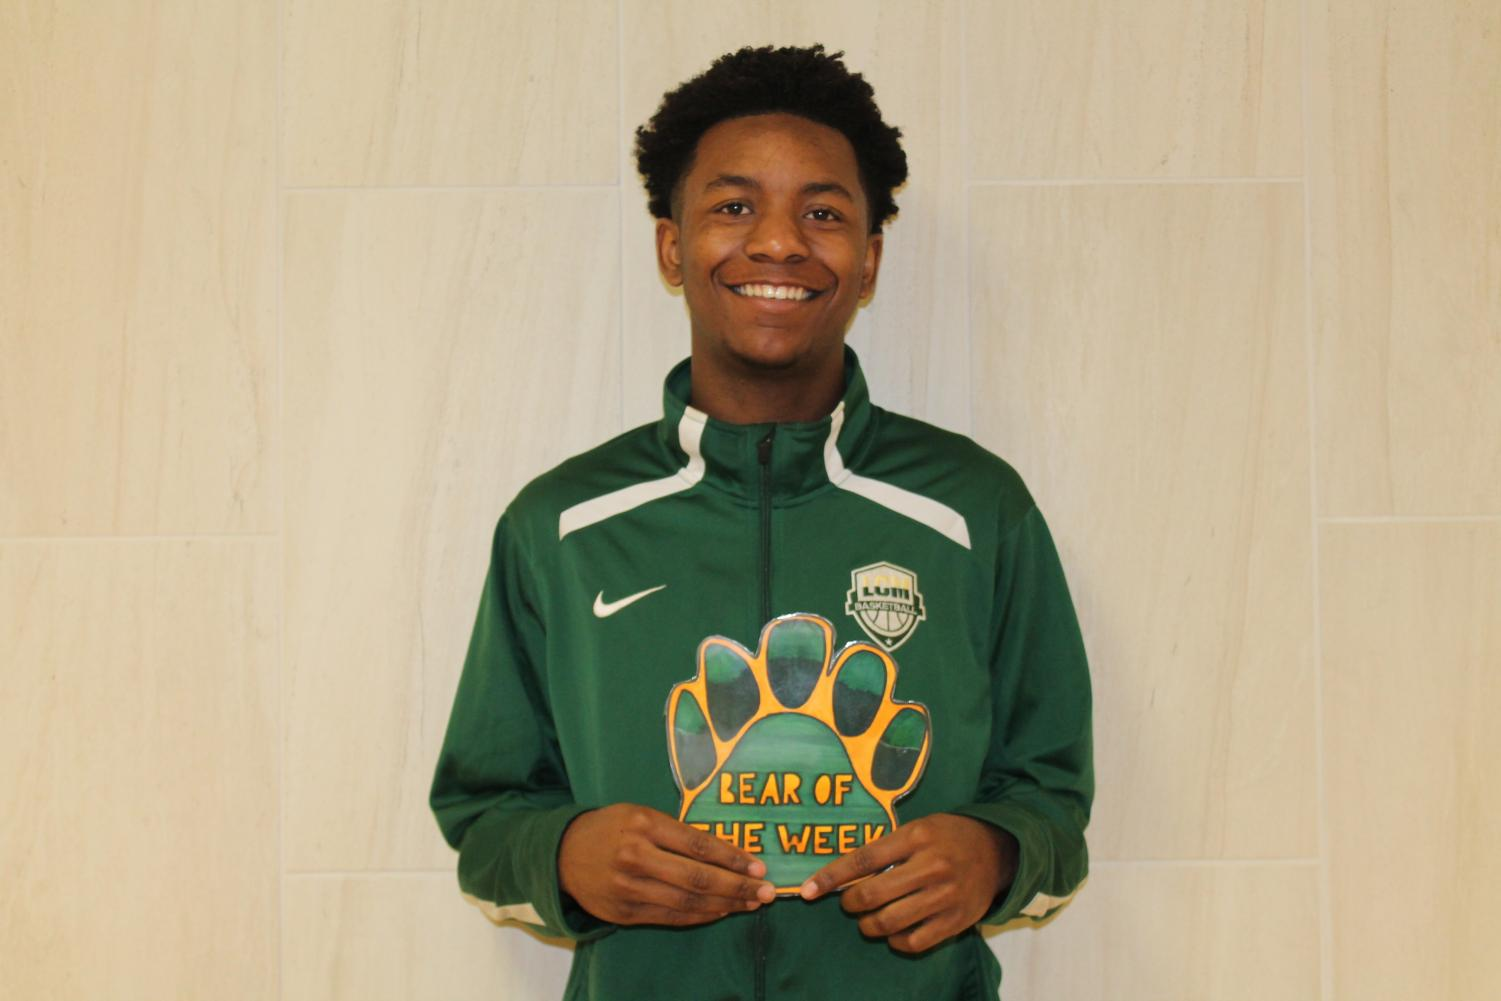 Senior Tyrese Heard is a member of the varsity basketball team.